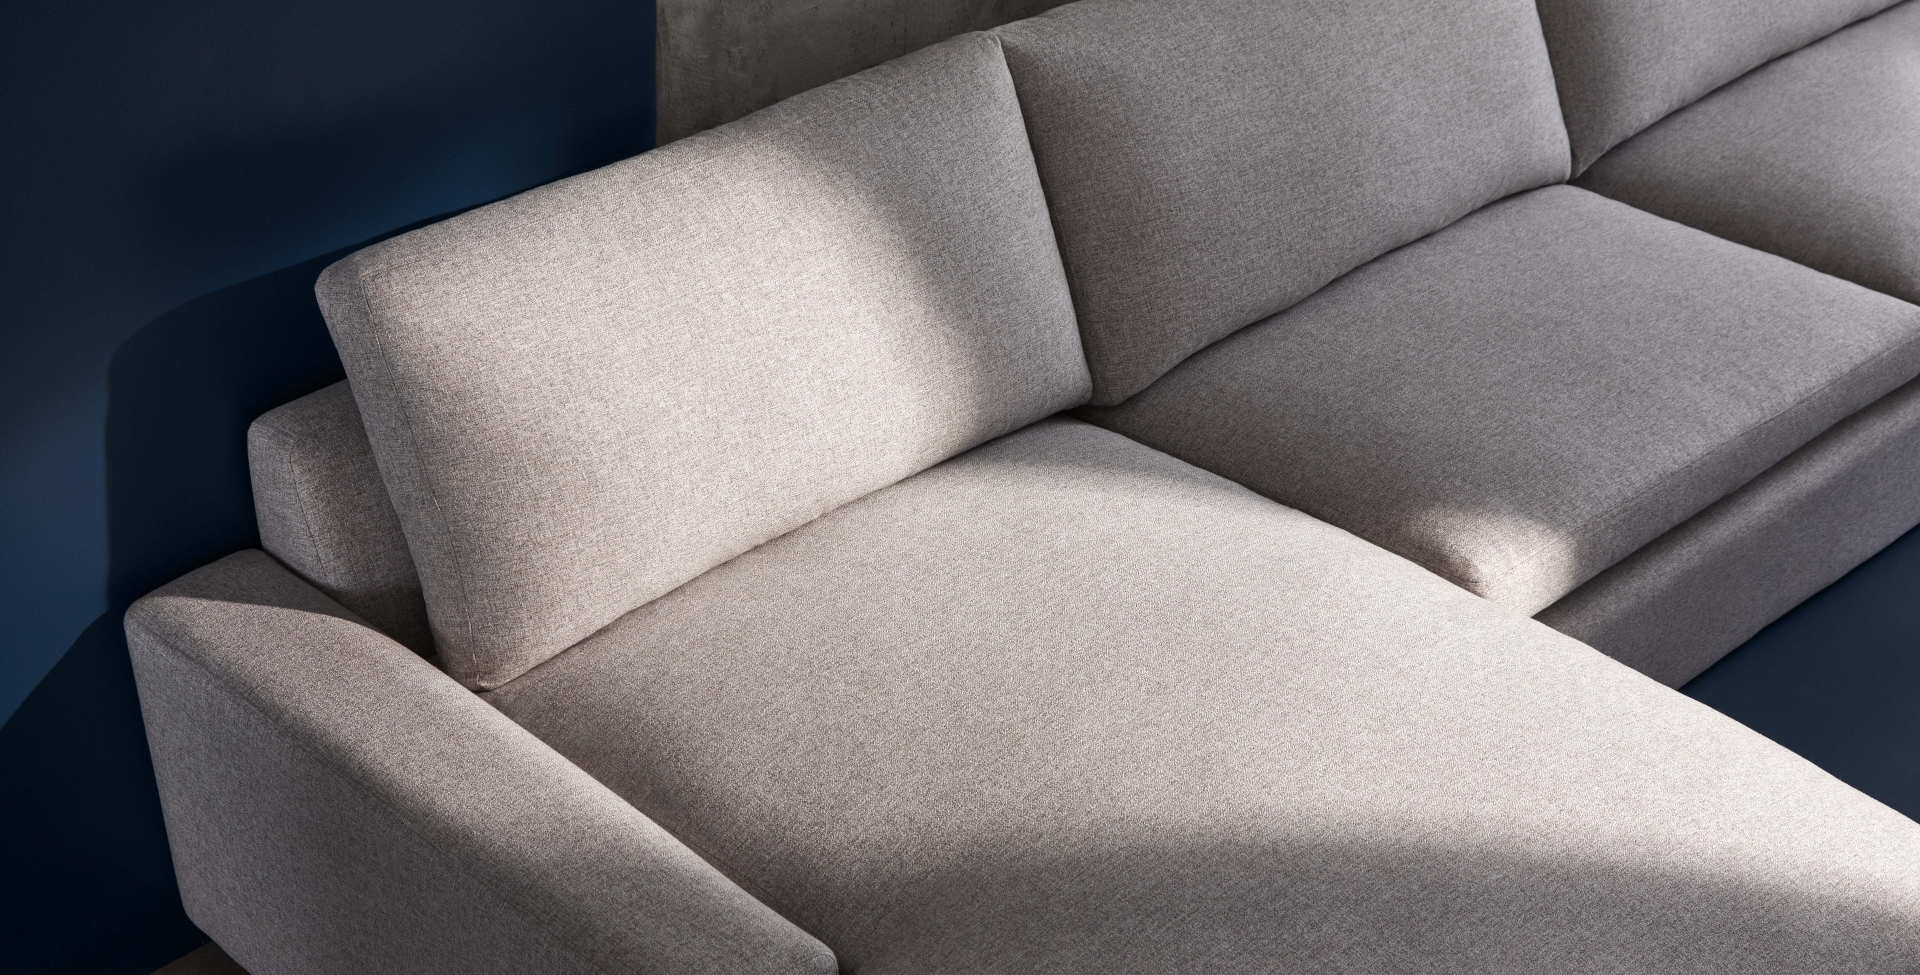 Romano Romano Manufactures Contemporary Upholstered Furniture With Simple Elegant Lines And Exceptional Comfort In Montreal